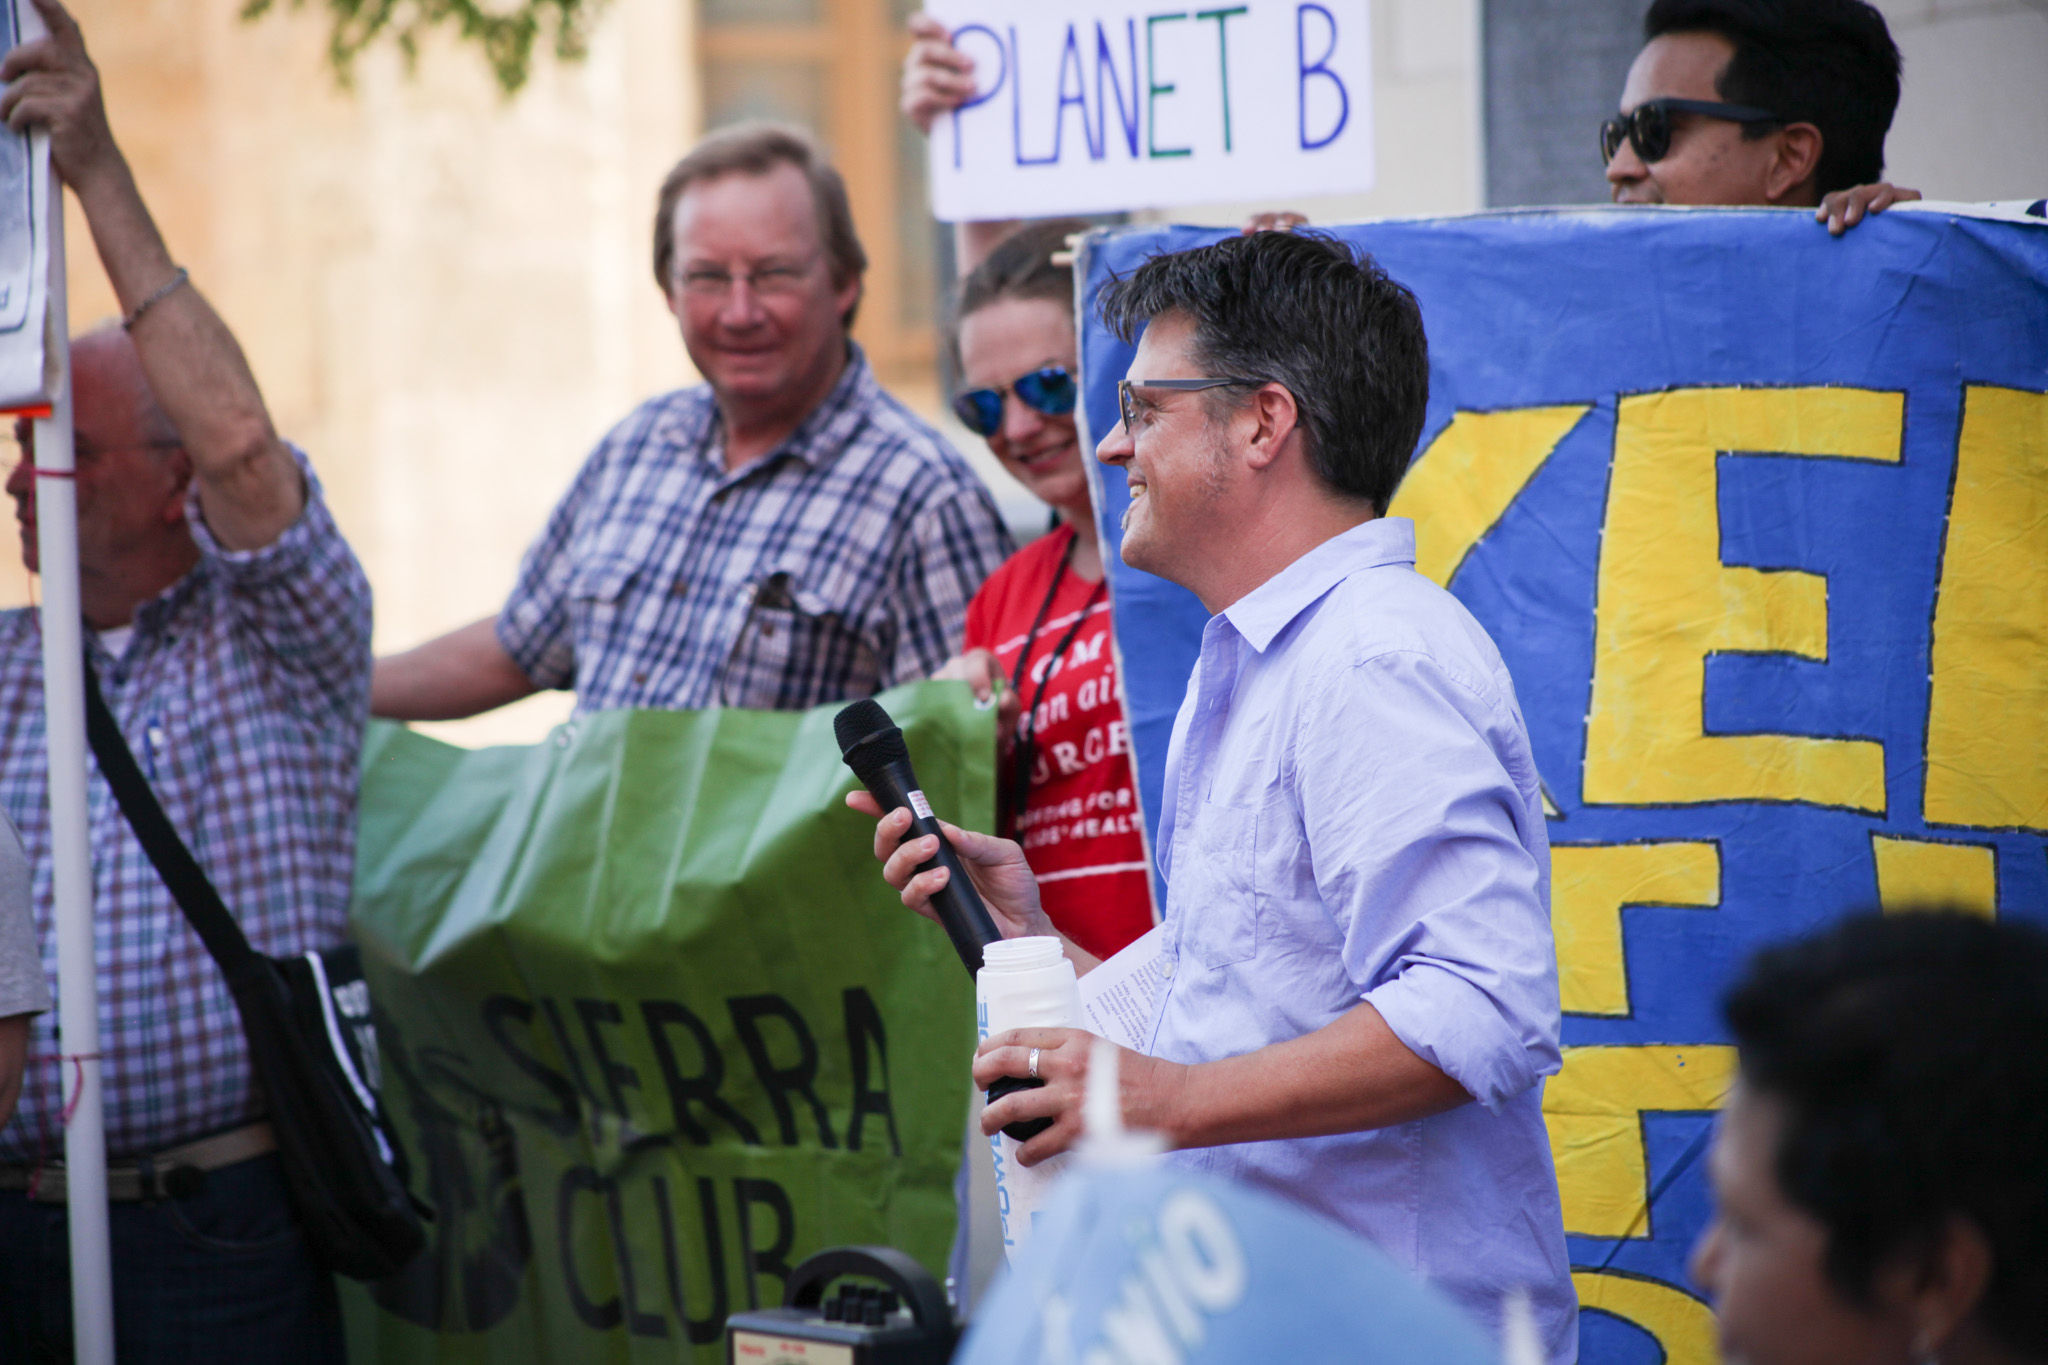 Clean energy organizer for the state chapter of the Sierra ClubGreg Harmon speaks at the rally for Paris Agreement.